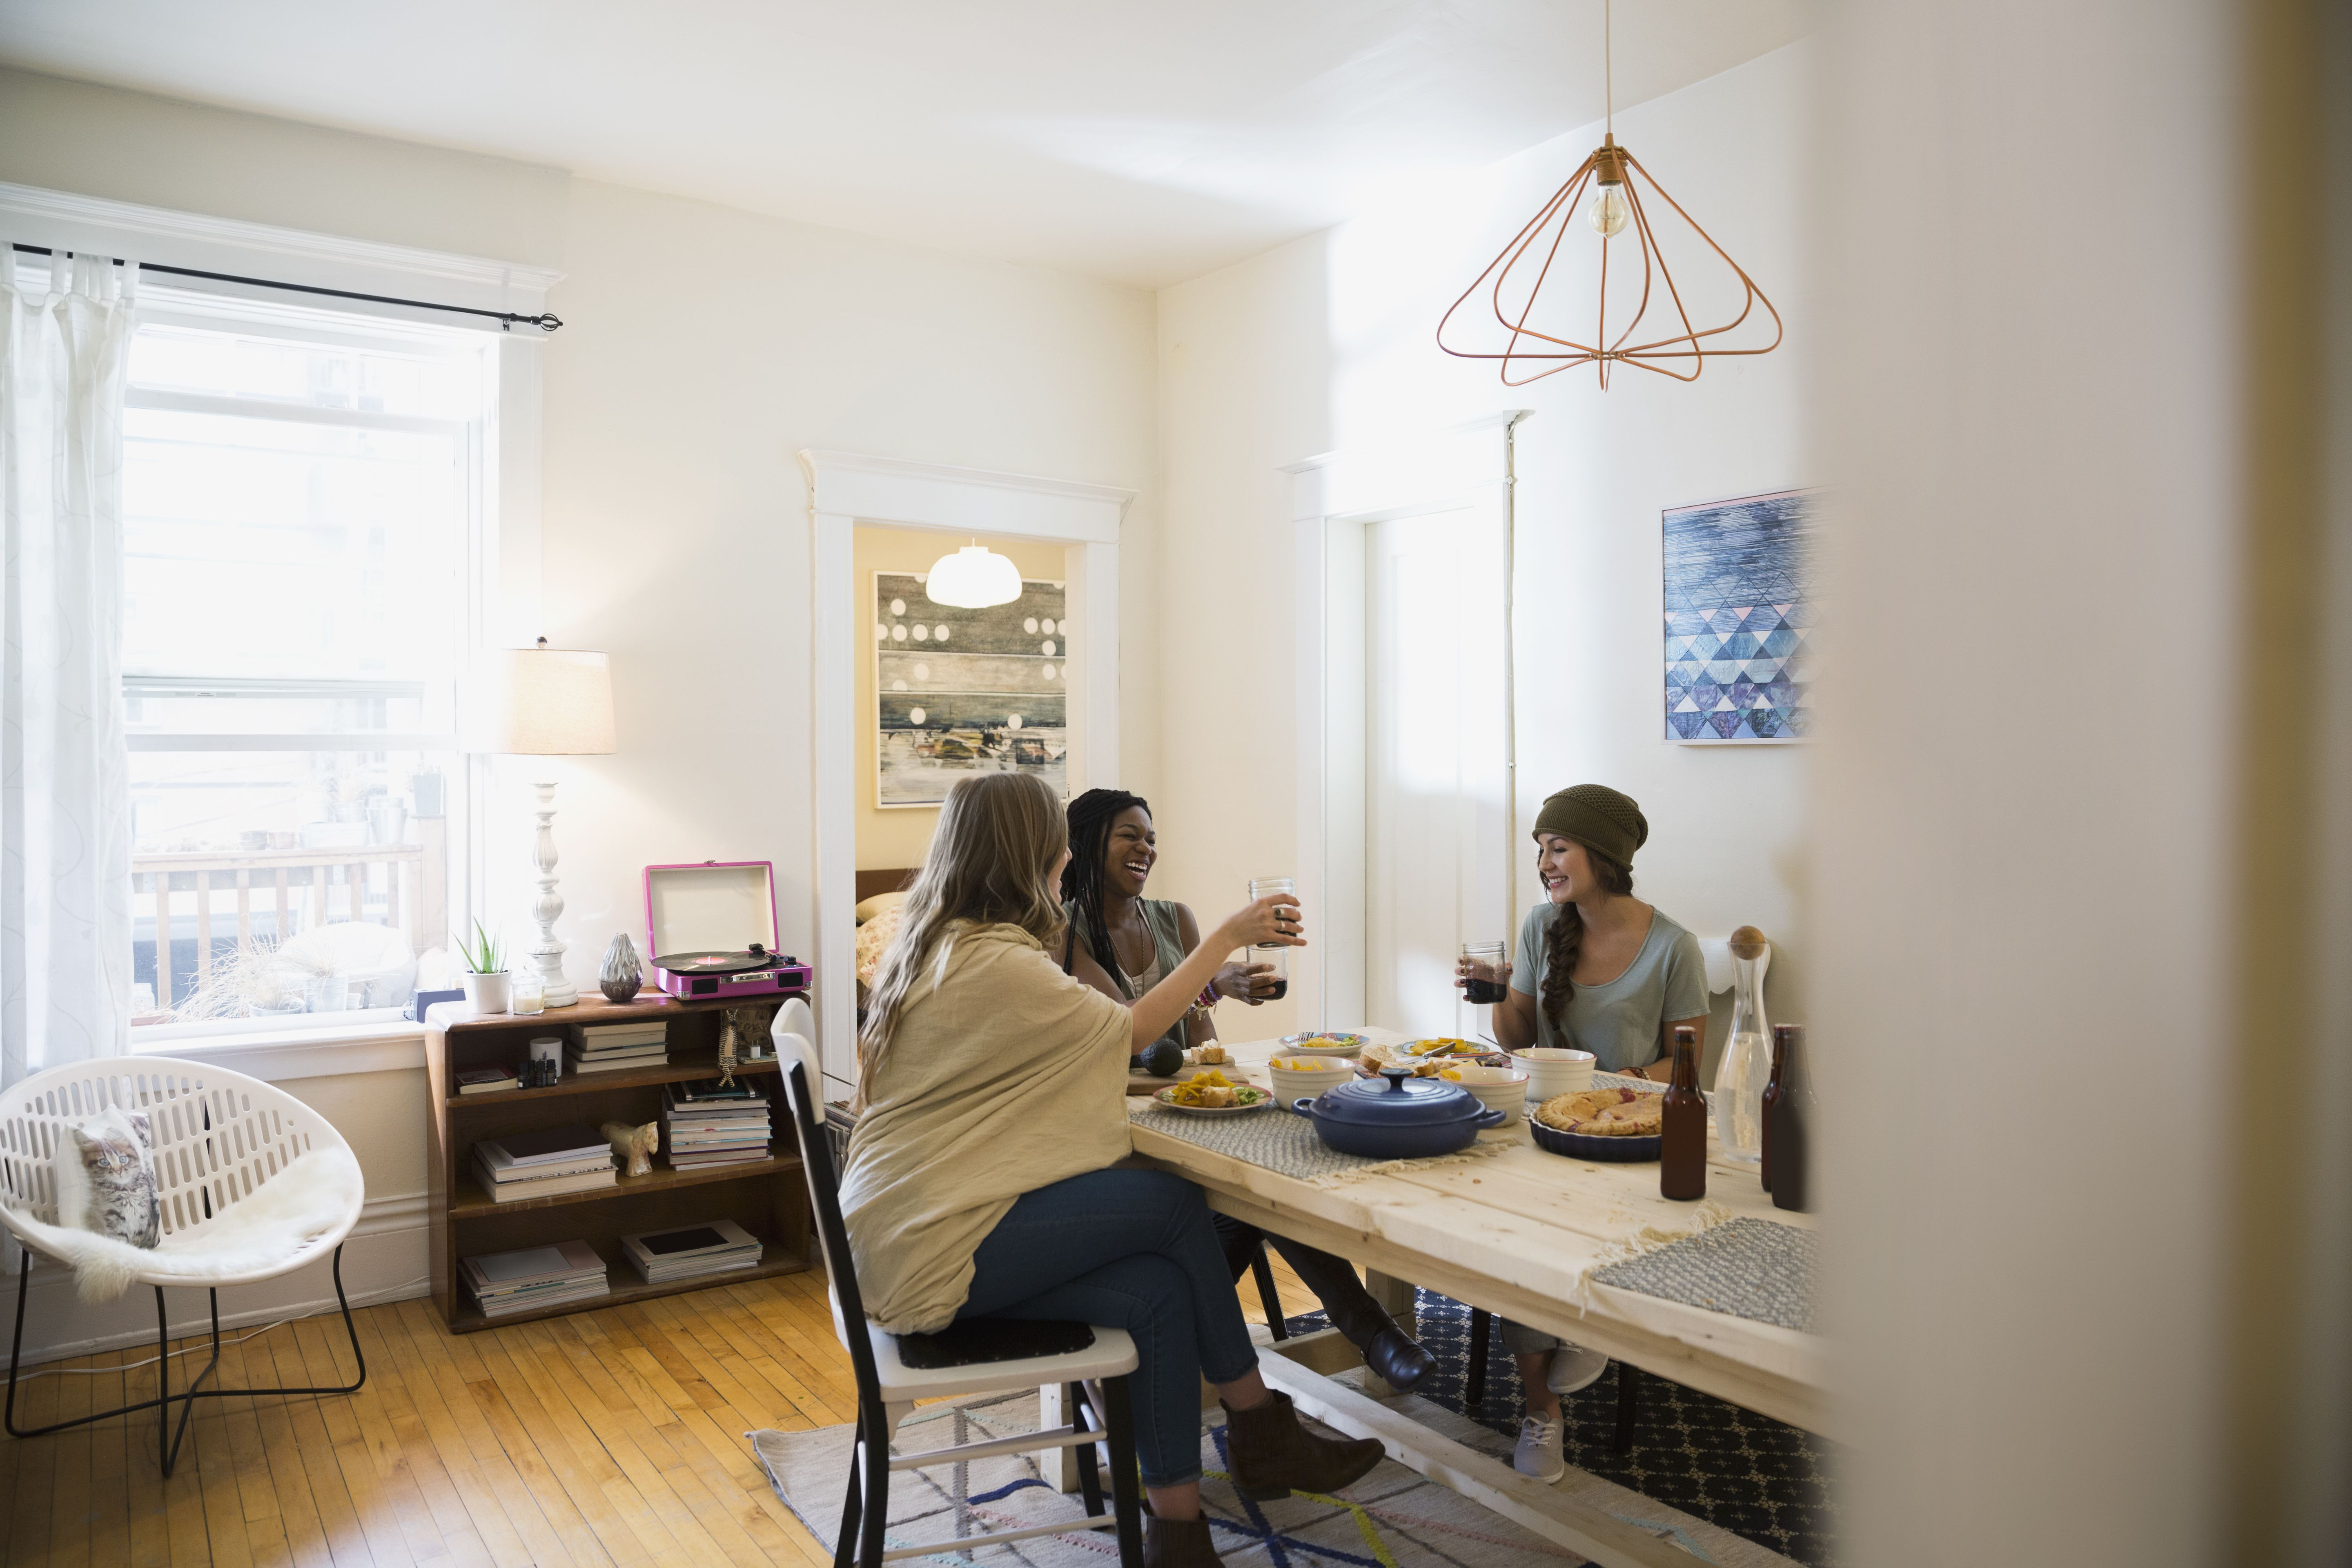 Home Decor & Organizing Ideas for Young Adult Roommates